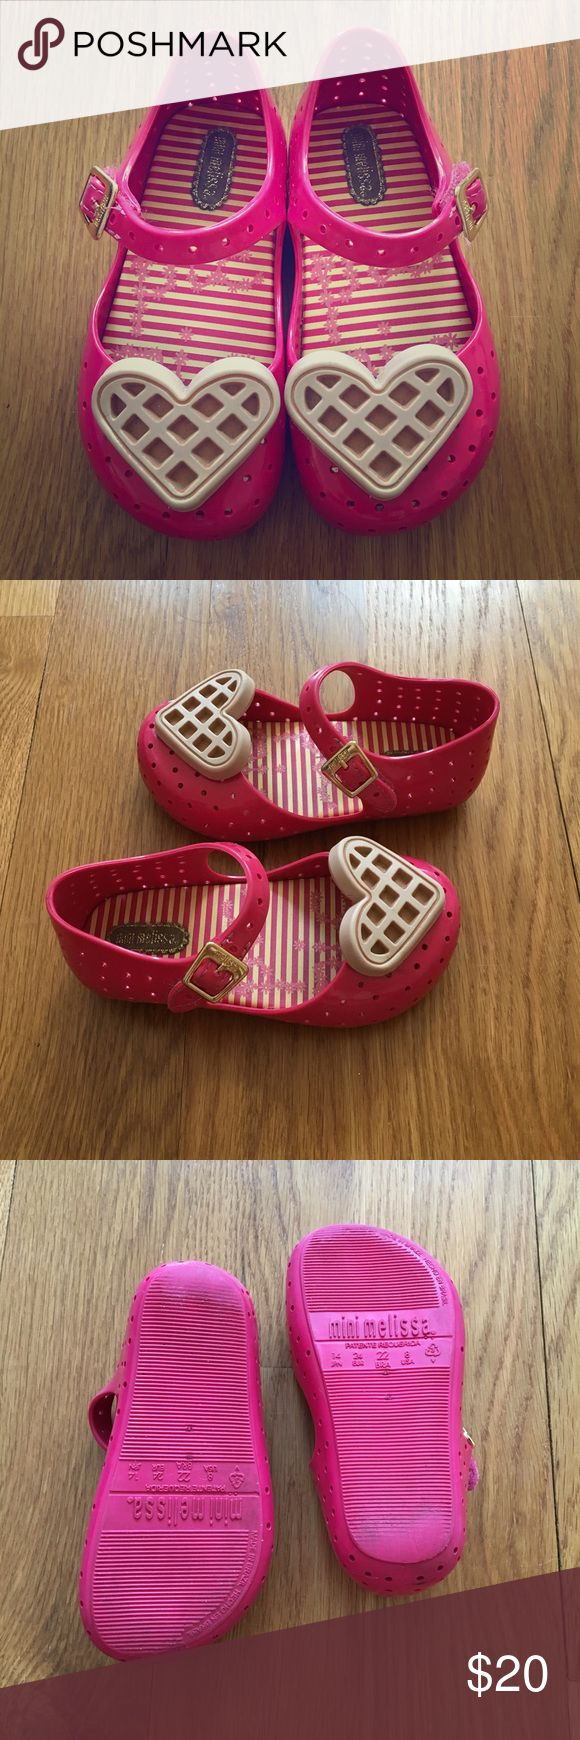 Mini Melissa Cute Waffle Heart Shoes / Size 8 / 💕 Mini Melissa Toddler Girl sandals in good used condition! Pink shoes with cute heart detail. Made in Brazil. Fruity scent! Mini Melissa Shoes Sandals & Flip Flops